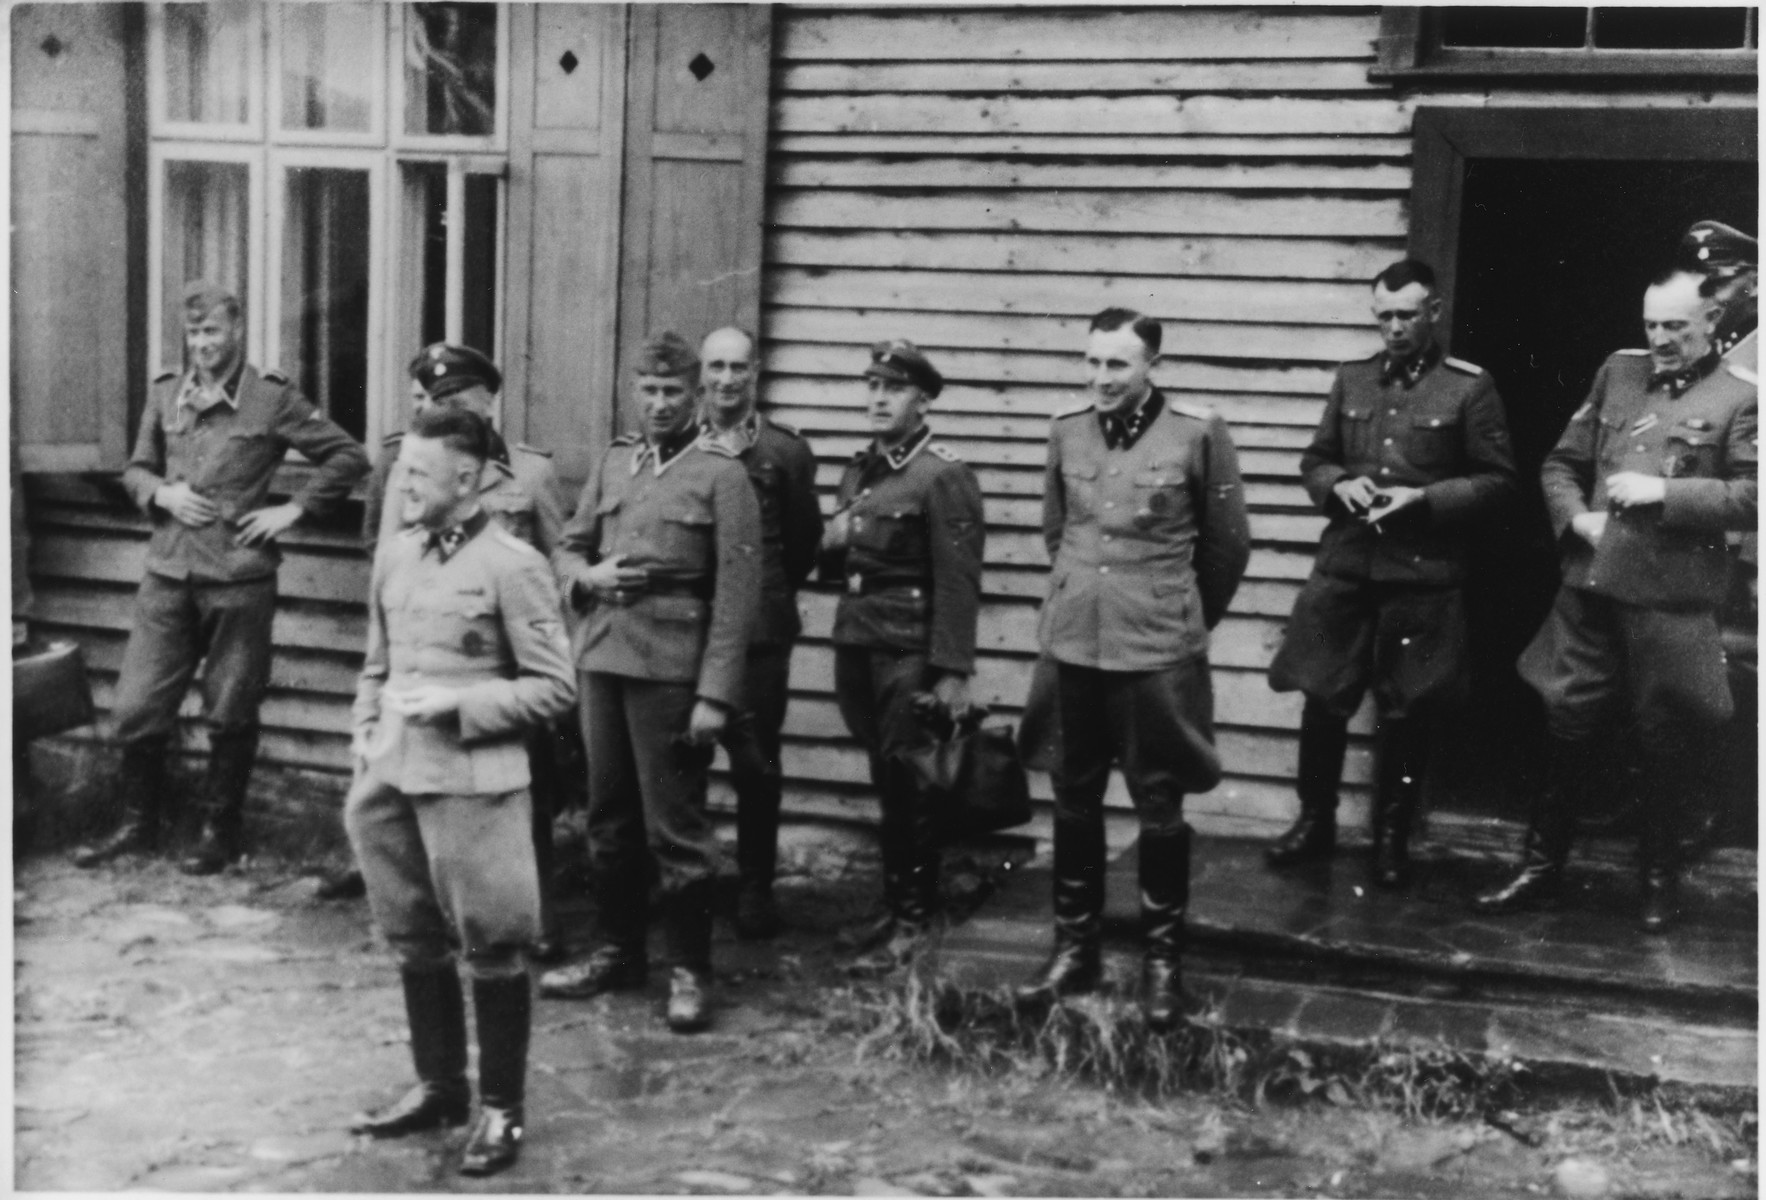 Group portrait of Nazi officers standing in front of a building in Solahutte, the SS retreat outside of Auschwitz.  Among those pictured are Franz Hoessler (front) and Karl Hoecker (third from the right).  Also pictured on the far right is SS-Obersturmführer Max Sell (served from 1943 to1945 first Arbeitseinsatzführer in Auschwitz and afterwards in Mittelbau-Dora.)  Also pictured in the back center is  scha. Hermann Baltasar Buch (30.12.1896-10.07.1959).  From 1943 until September 1944 Buch was in charge of the crematory IV in Birkenau.  [Based on the officers visiting Solahutte, we surmise that the photographs were taken to honor Rudolf Hoess who completed his tenure as garrison senior on July 29.]